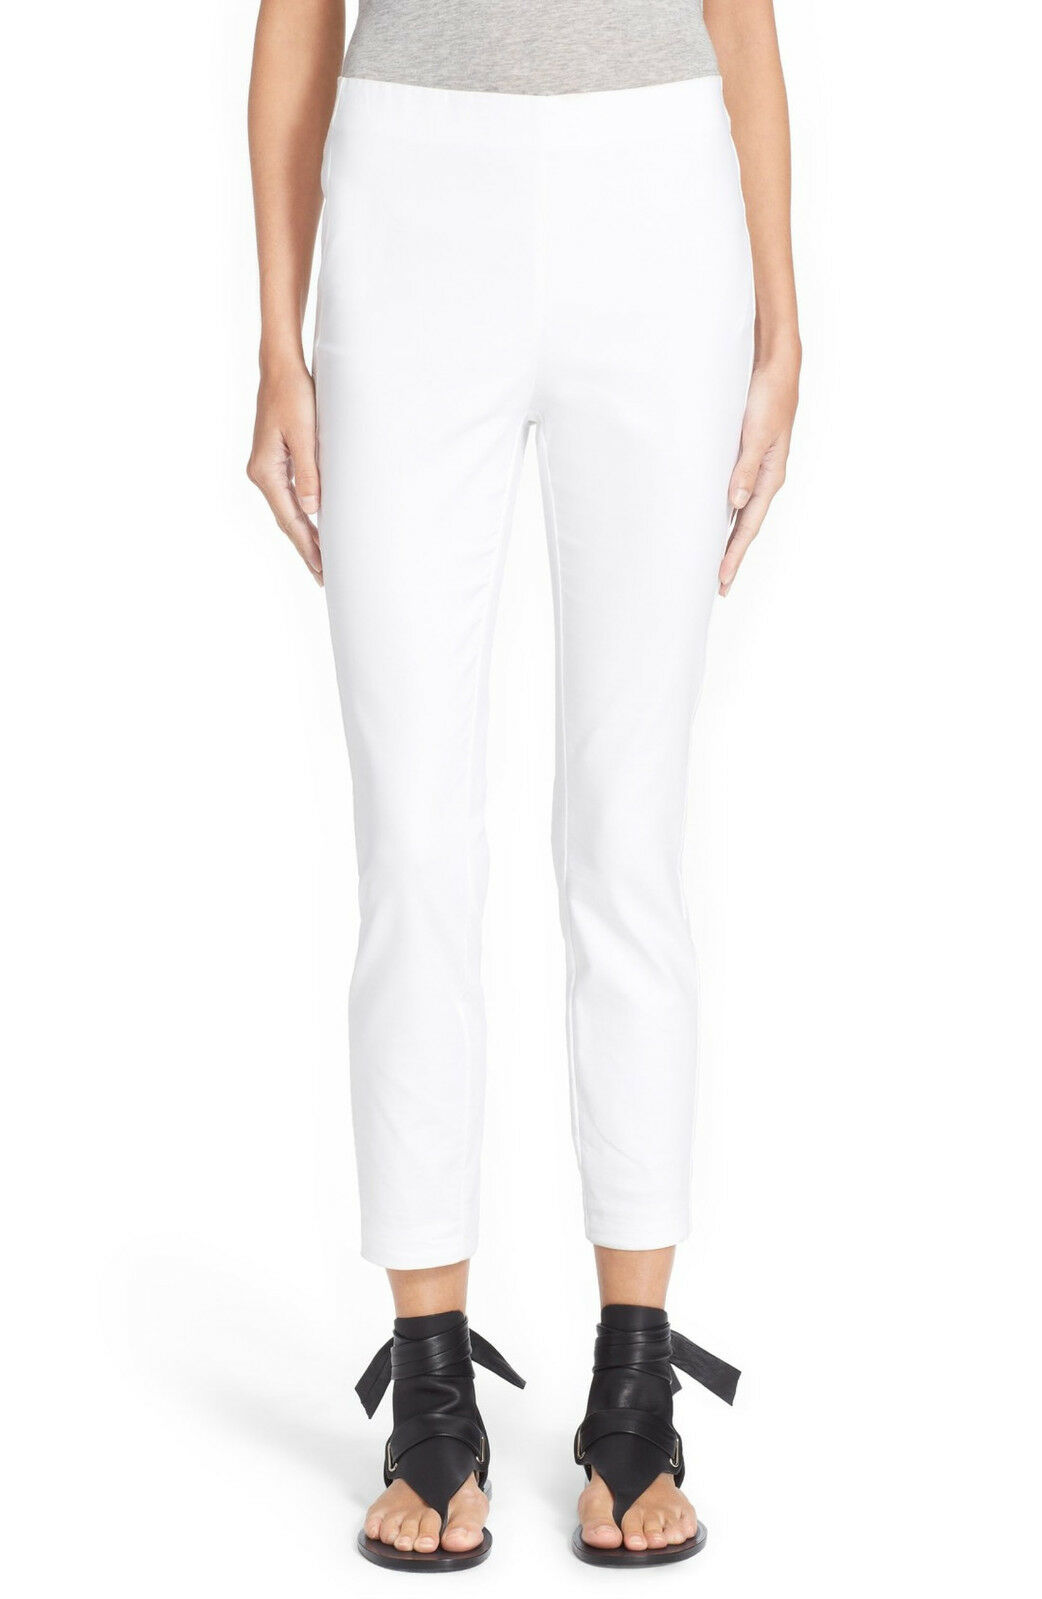 RAG & BONE Simone Slim Stretch Ankle Pants White Size 2 Extra Small NEW  295.00